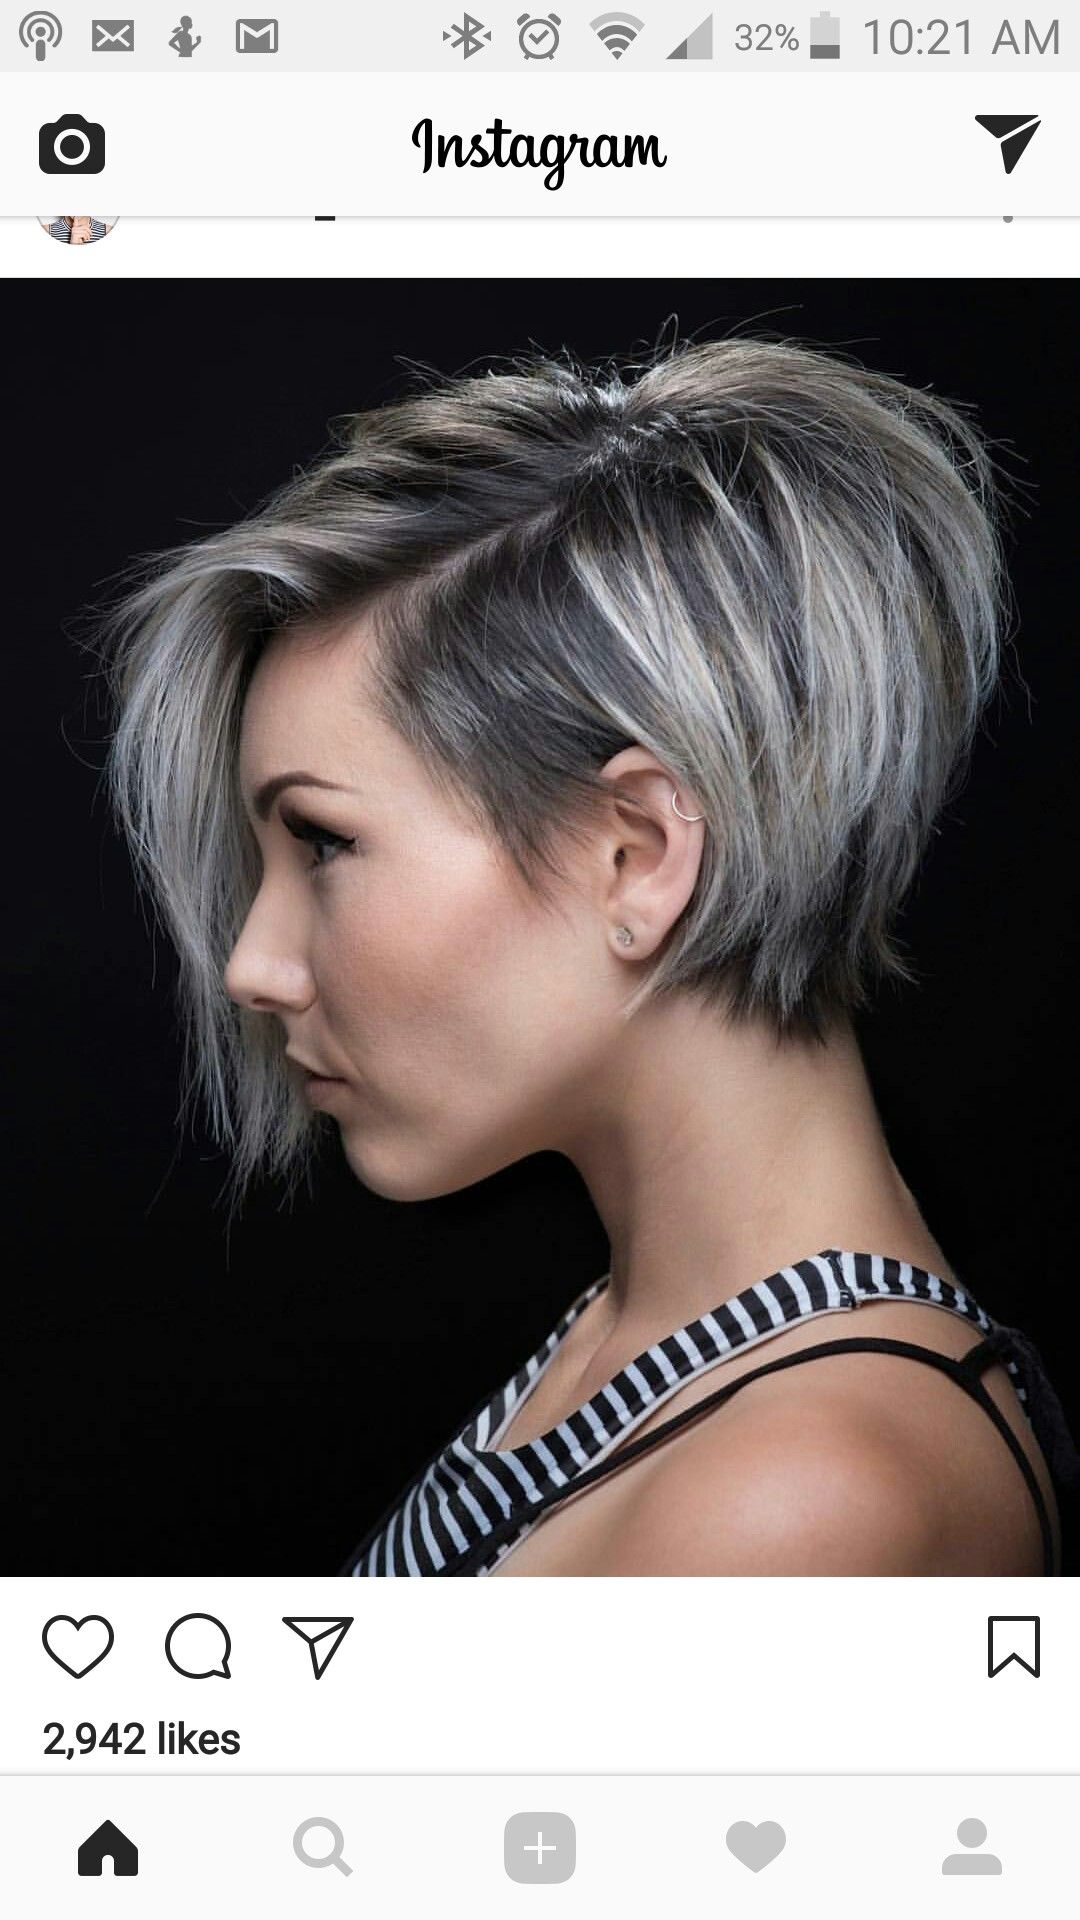 Love the cut and color on this